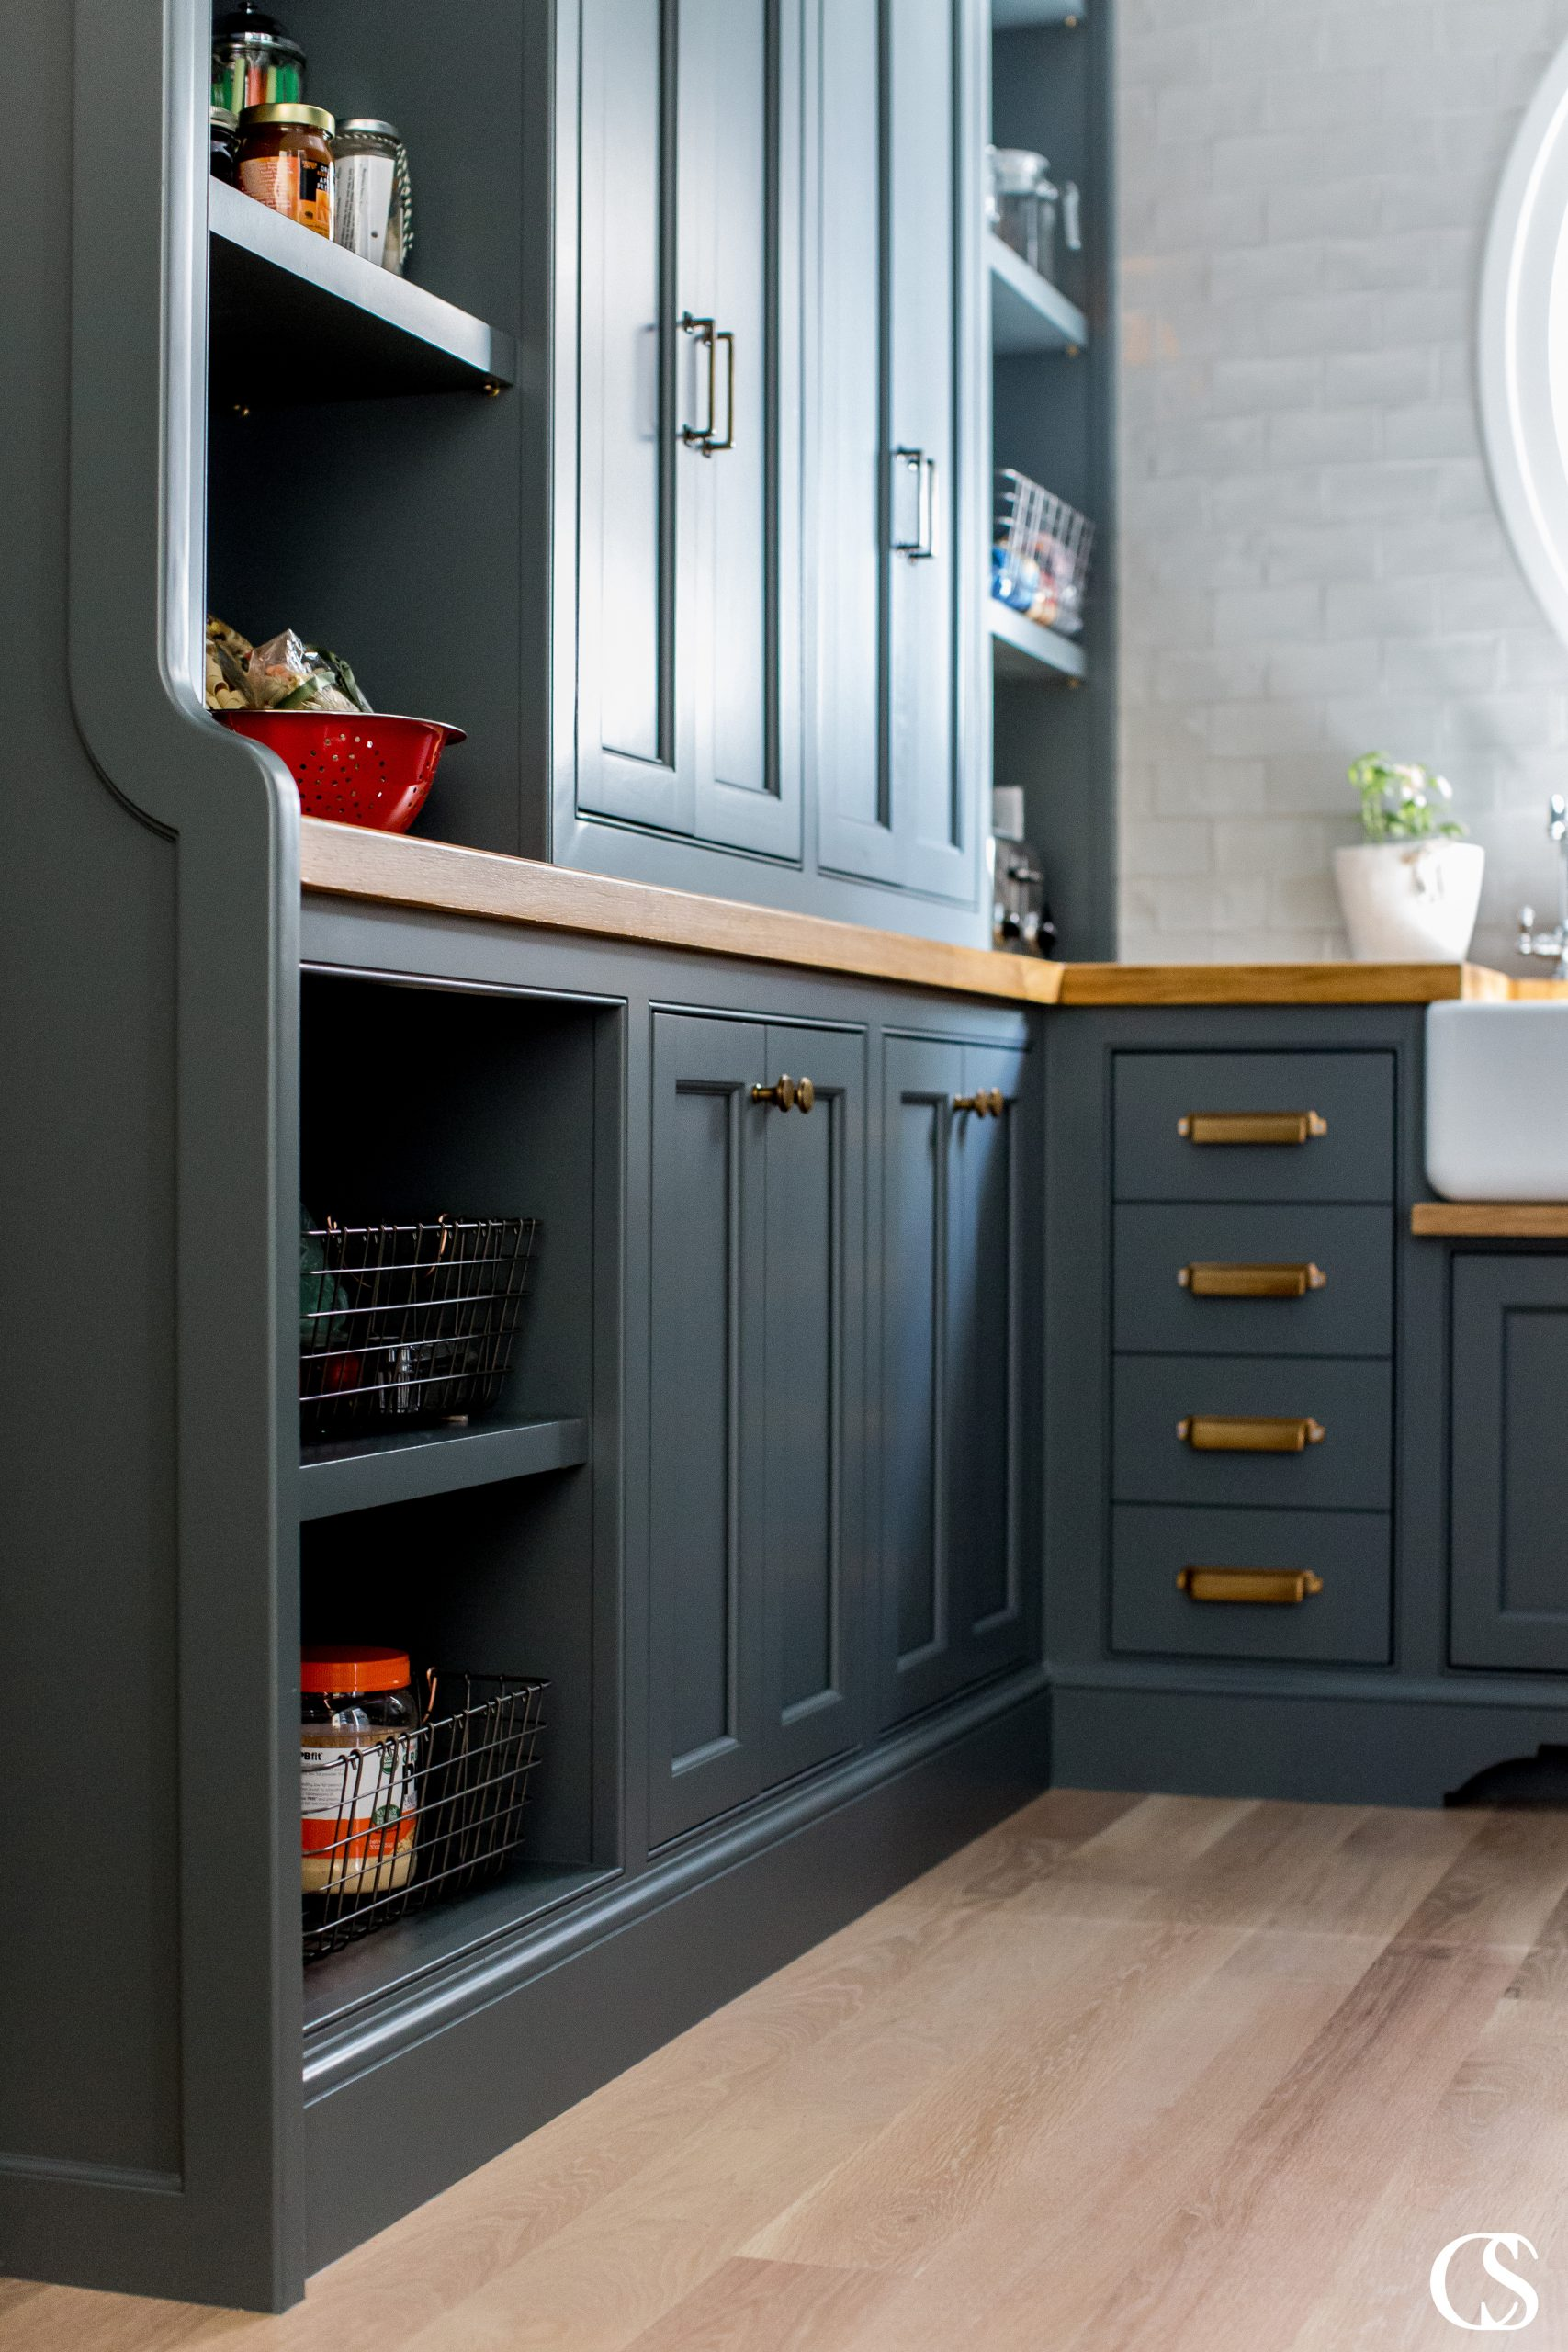 This custom kitchen pantry design idea included moody black cabinets, brass hardware, and oak countertops with plenty of space for style and storage.